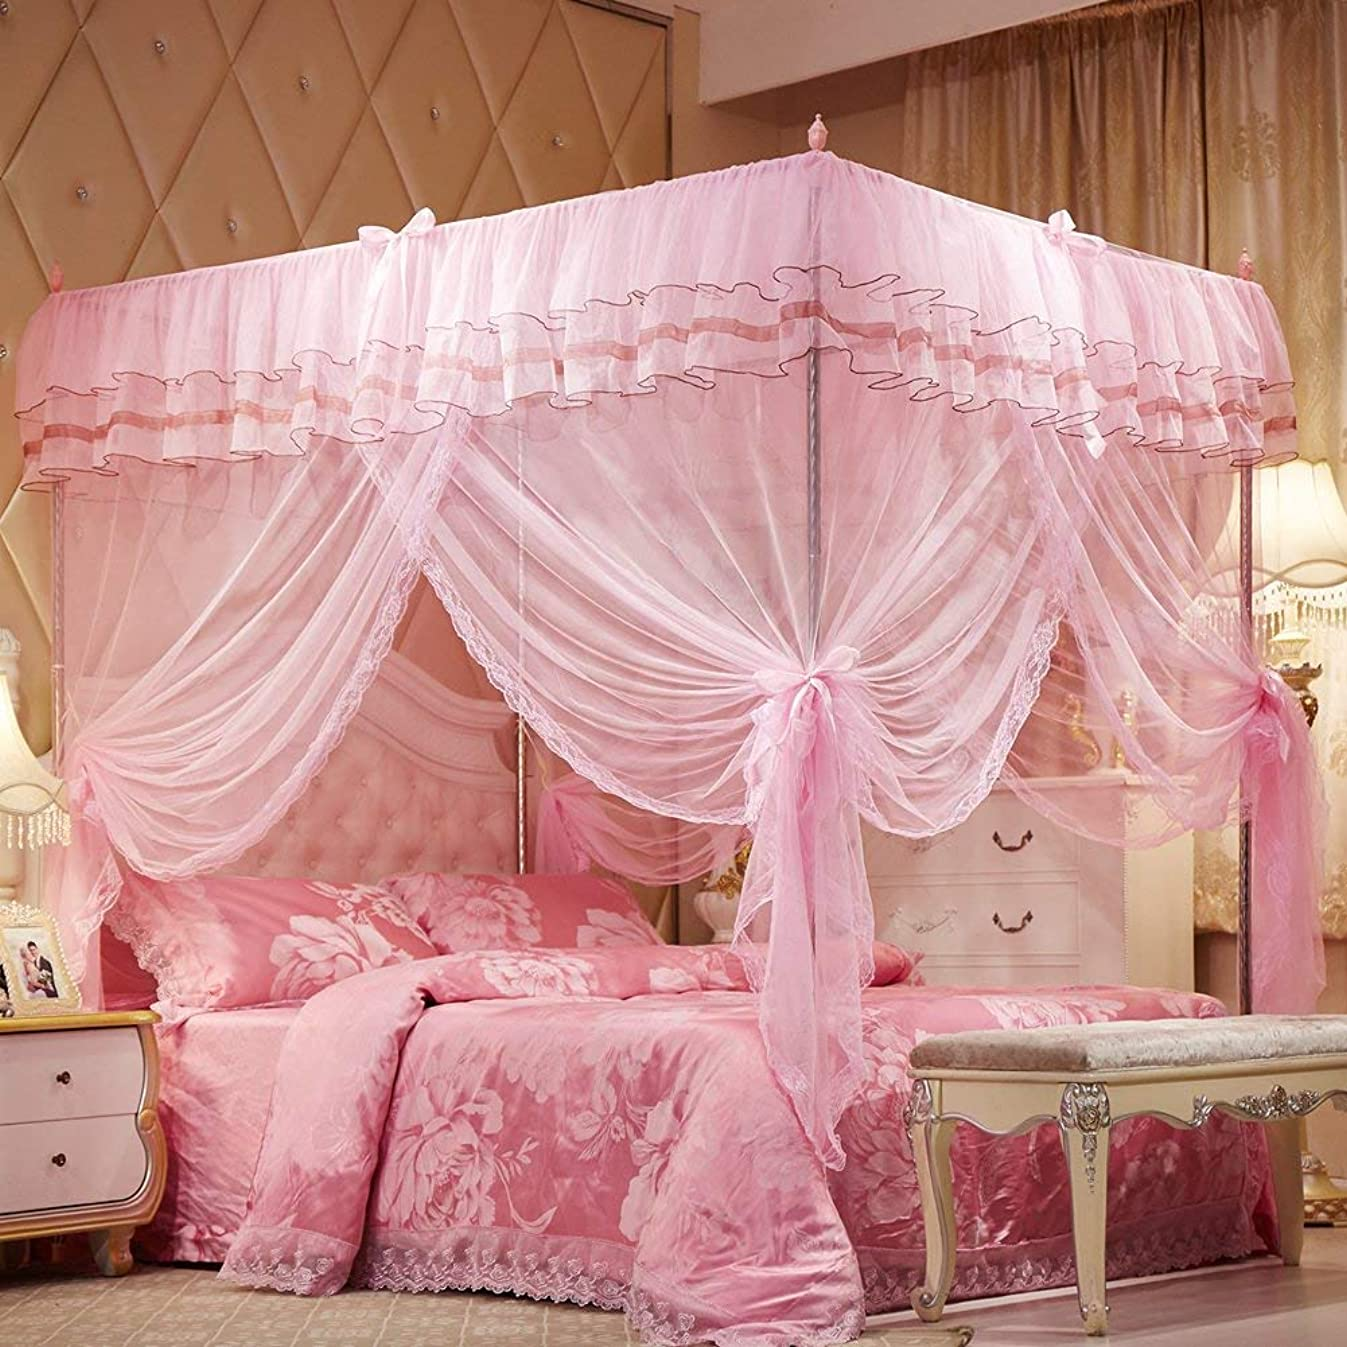 Uozzi Bedding 4 Corners Post Pink Canopy Bed Curtain for Girls & Adults - Cute Cozy Drape Square Netting for Twin Bed - 4 Opening 45